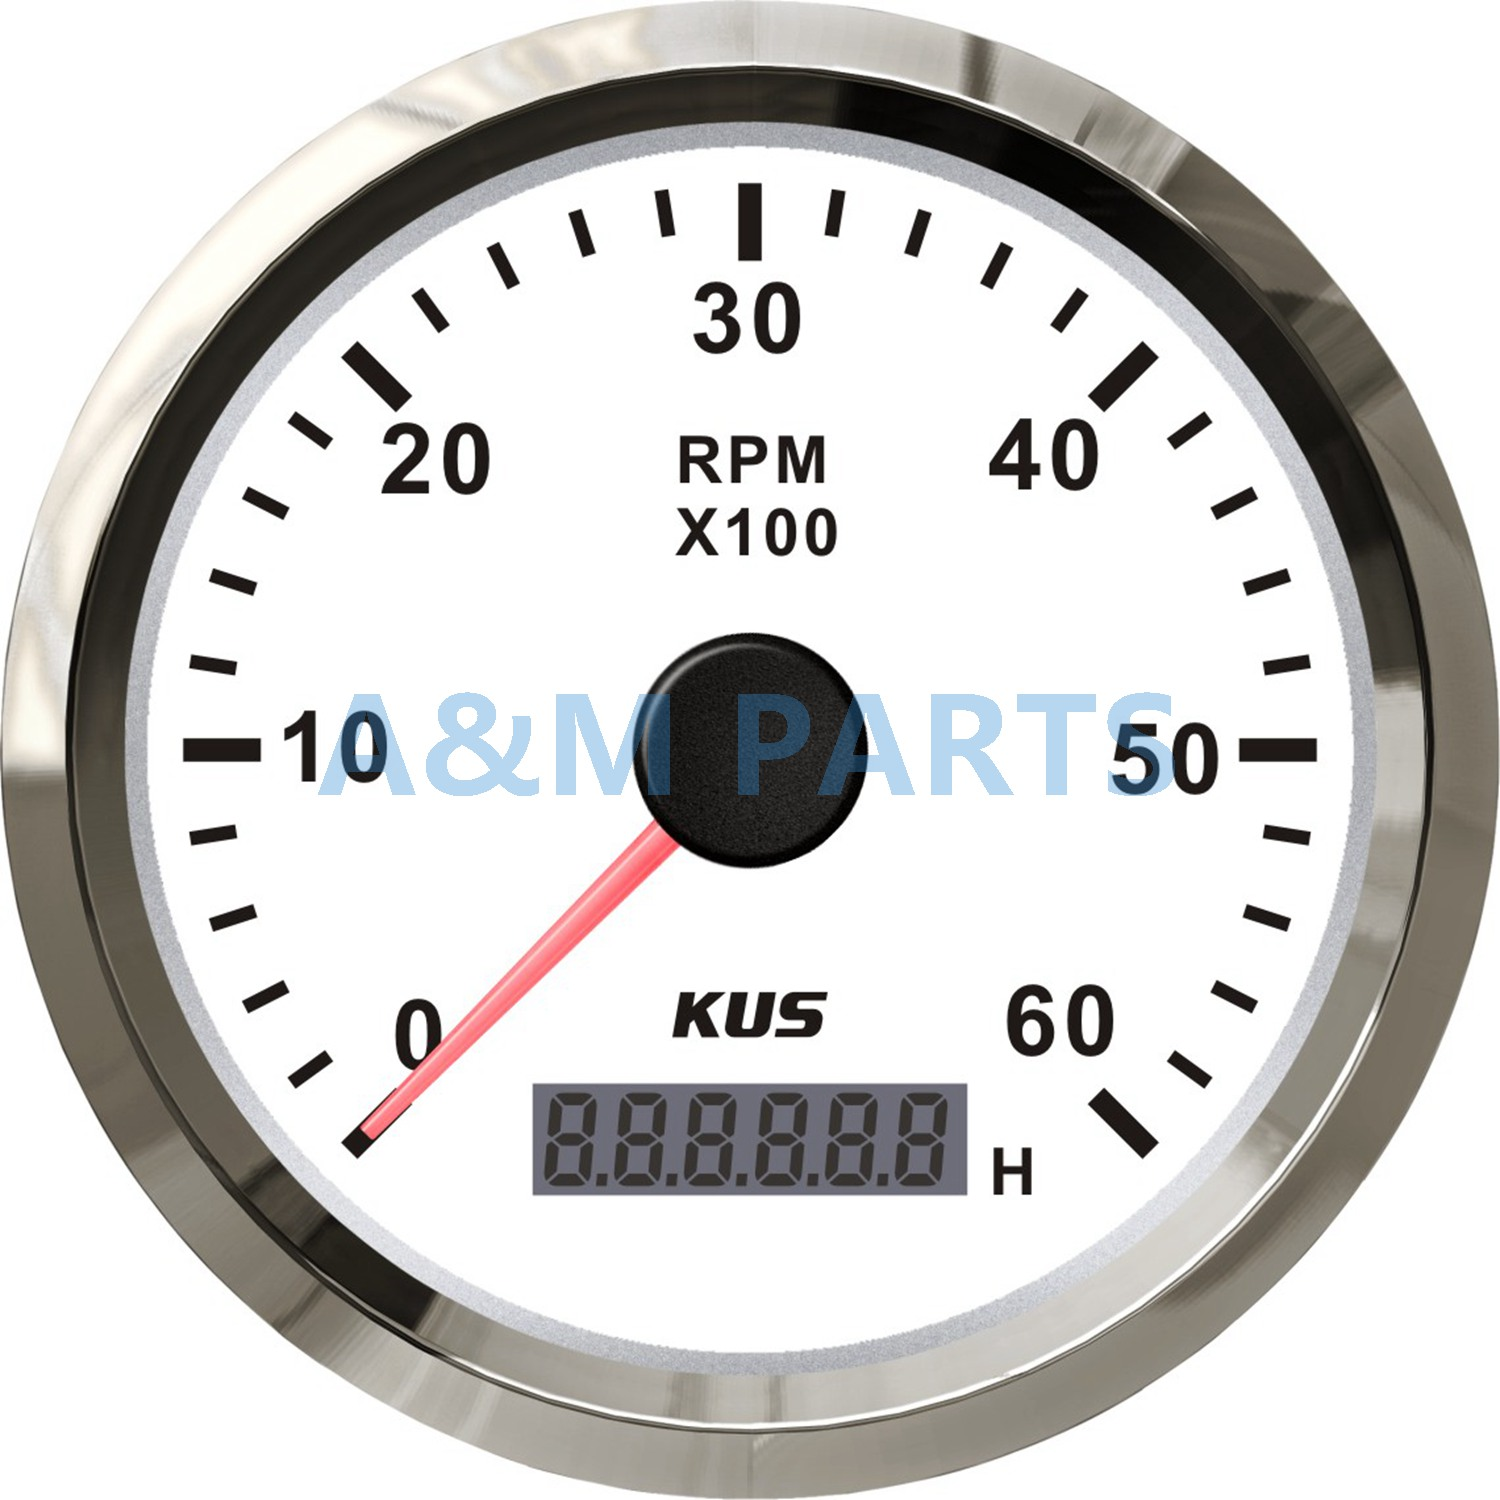 KUS Marine Outboard Tachometer With LED Hourmeter Boat Truck Car RV Waterproof RPM Meter 6000 RPM